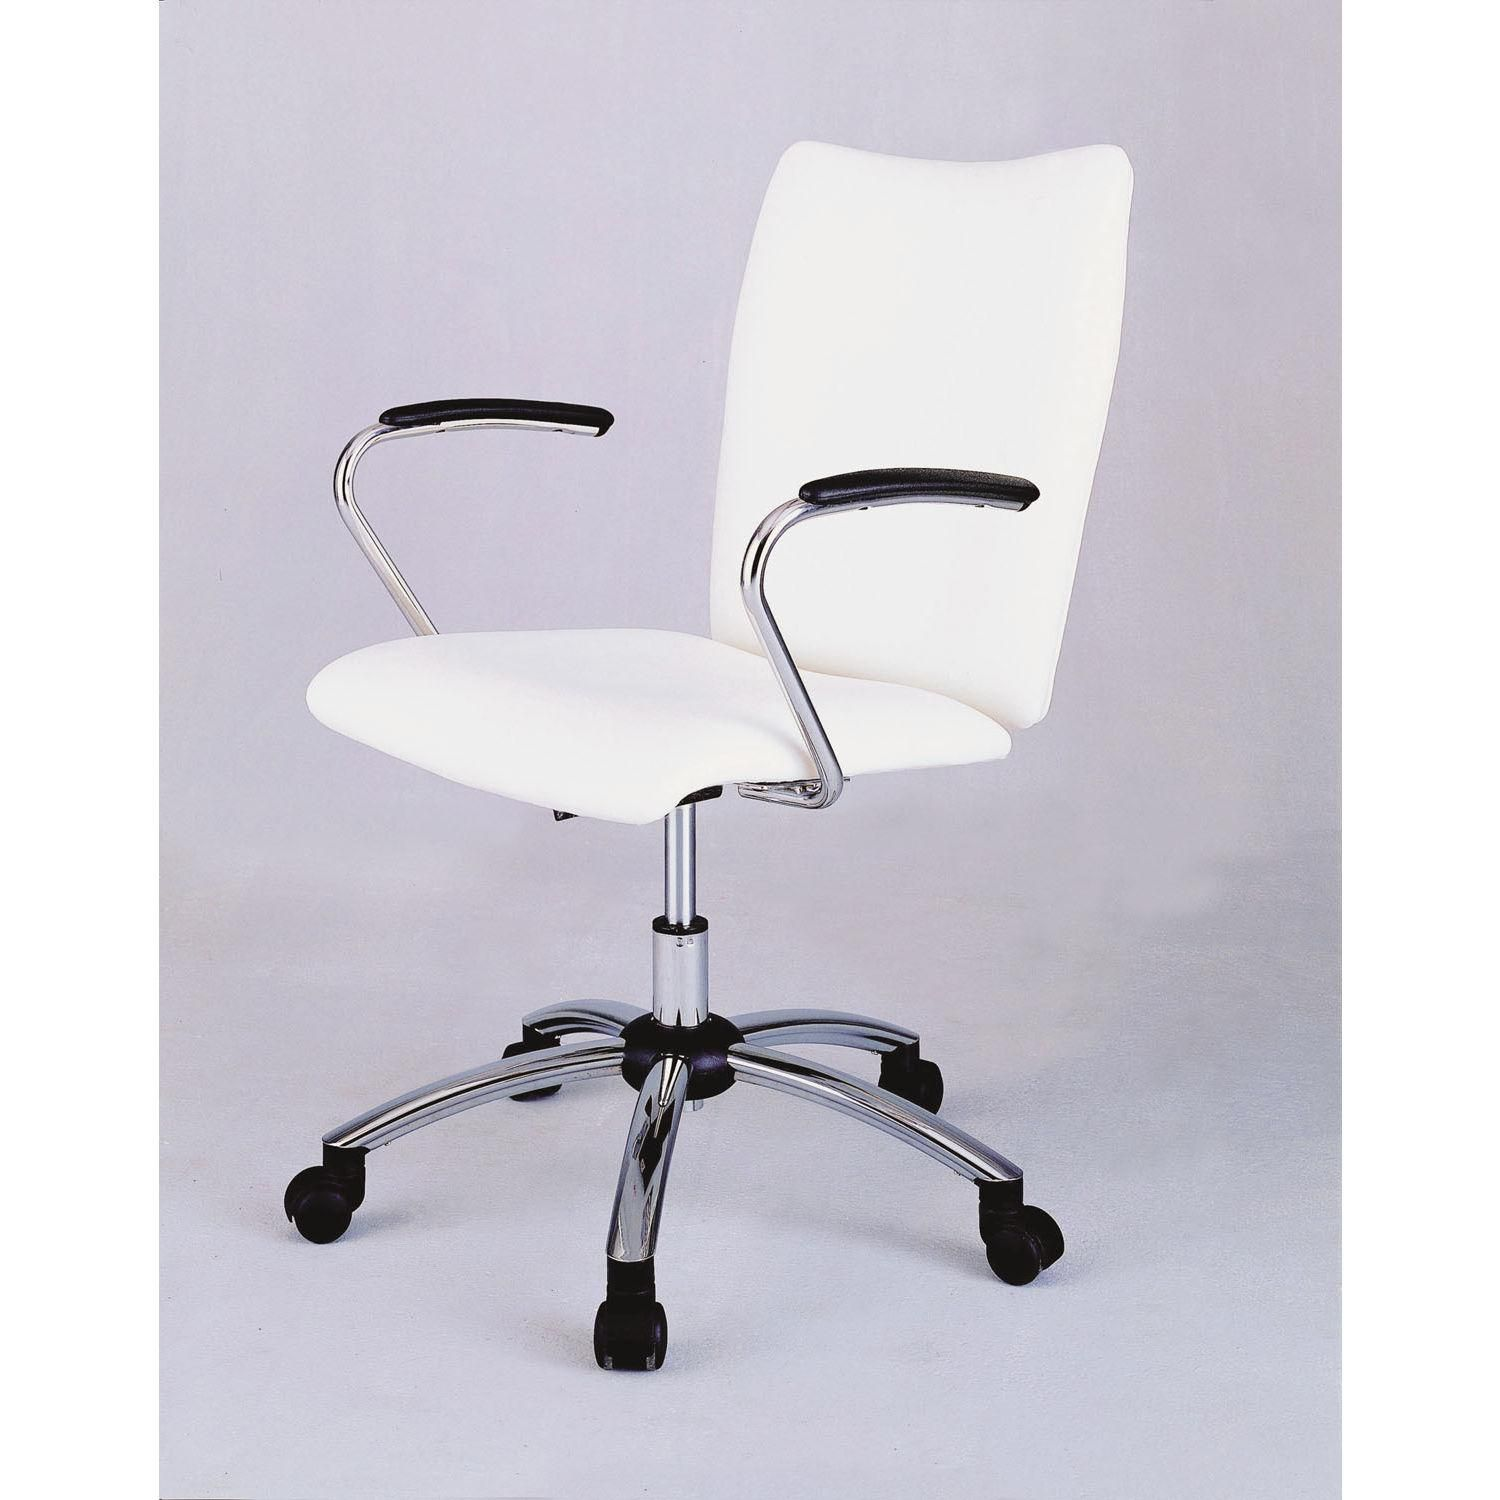 White Desk Chairs For Teens With Arm Rest For Home